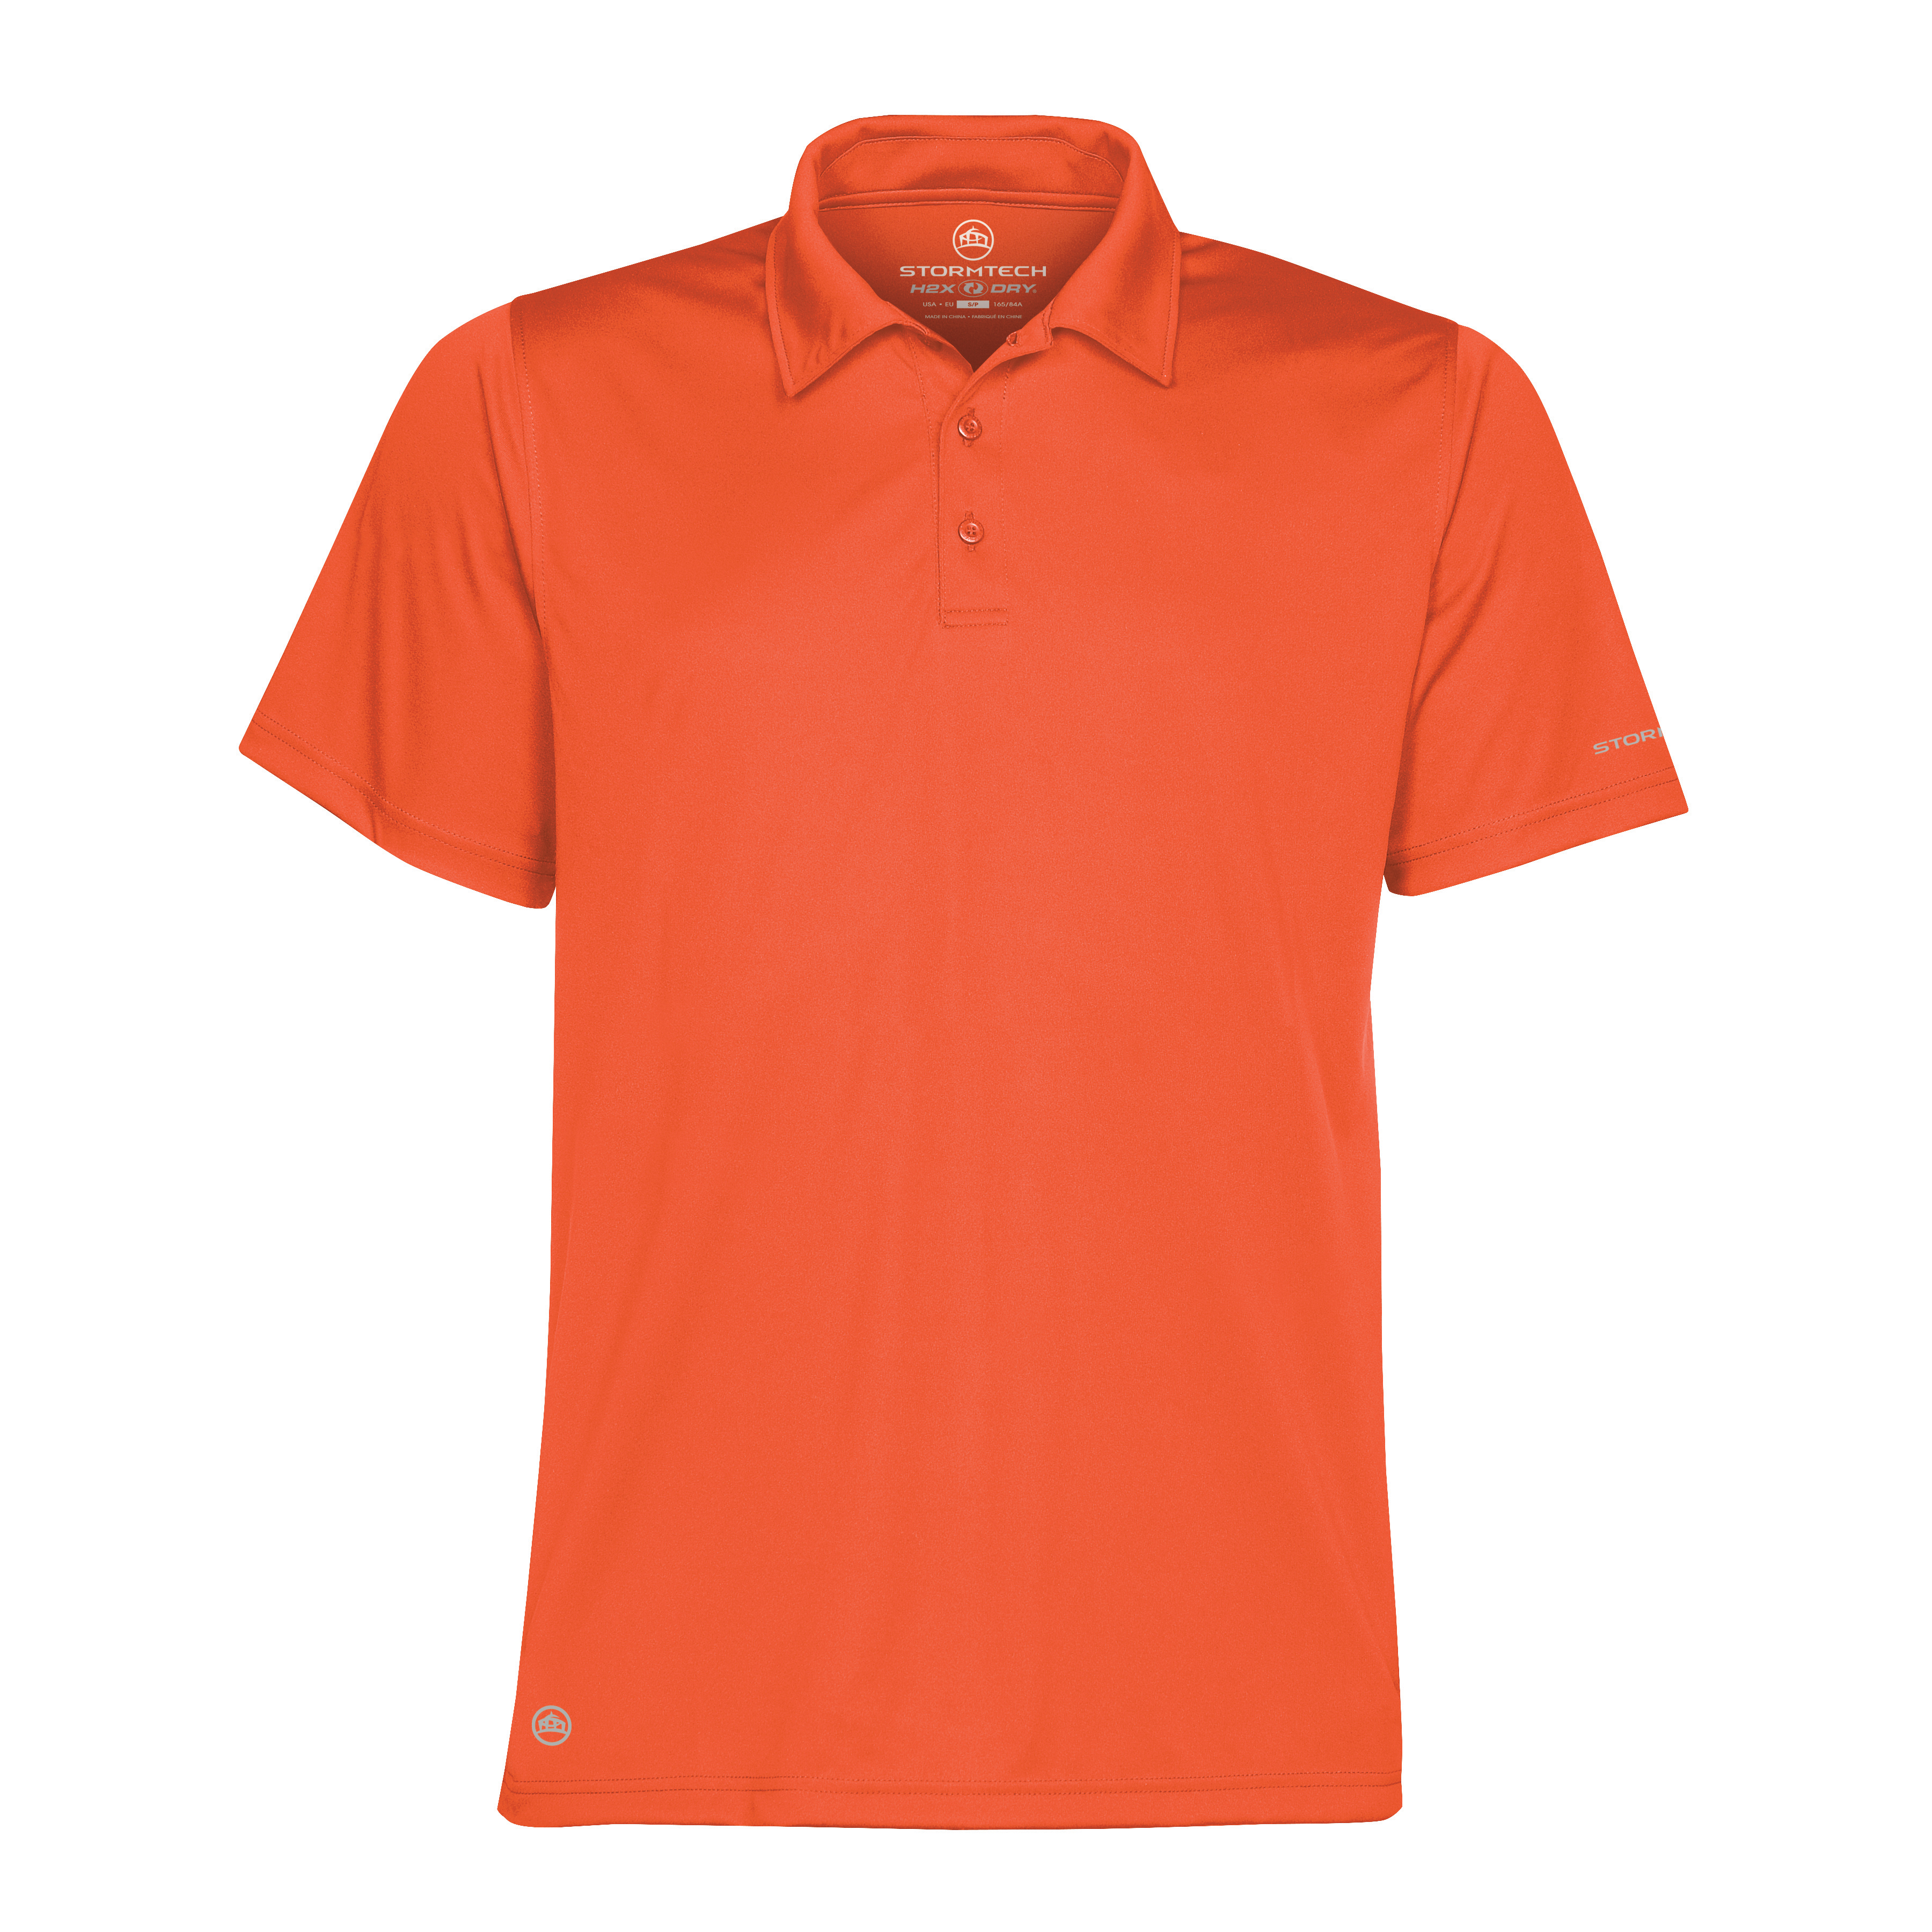 Activewear Tops New Mens Stormtech Sports Performance Short Sleeve Fabric Polo Tshirt Size S-2xl